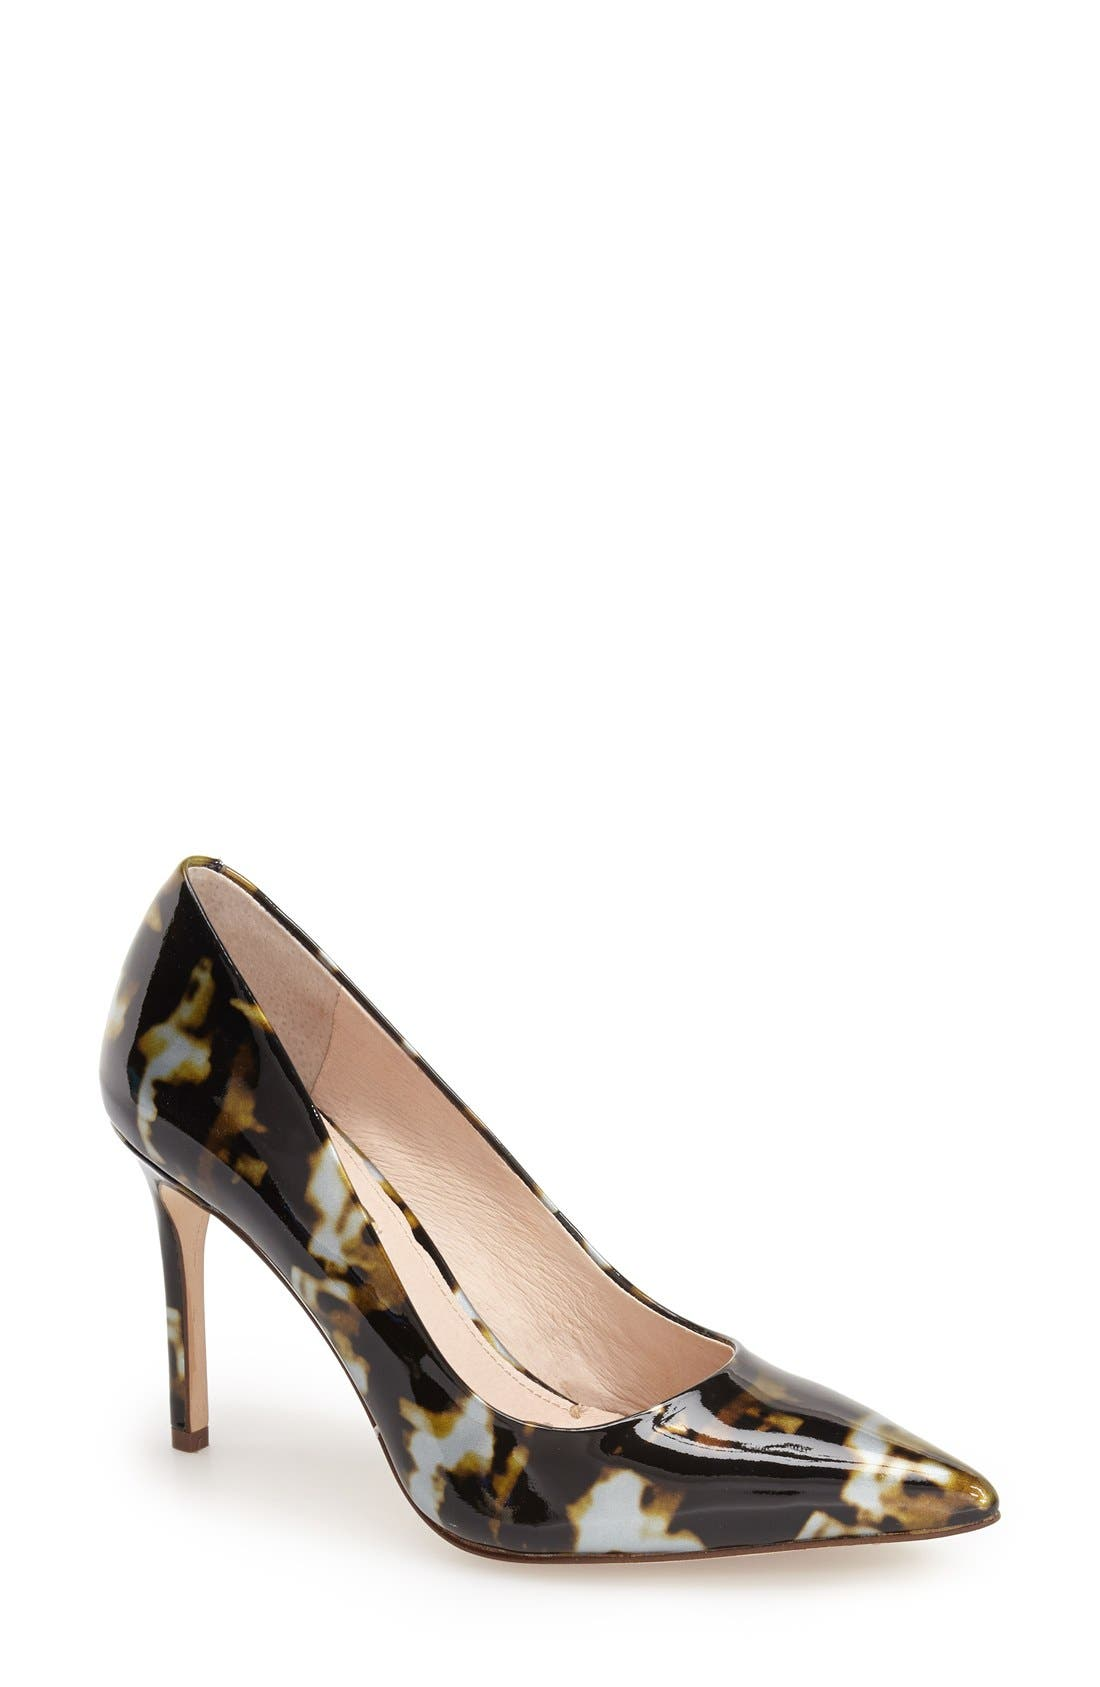 Alternate Image 1 Selected - Louise et Cie 'Seville' Pump